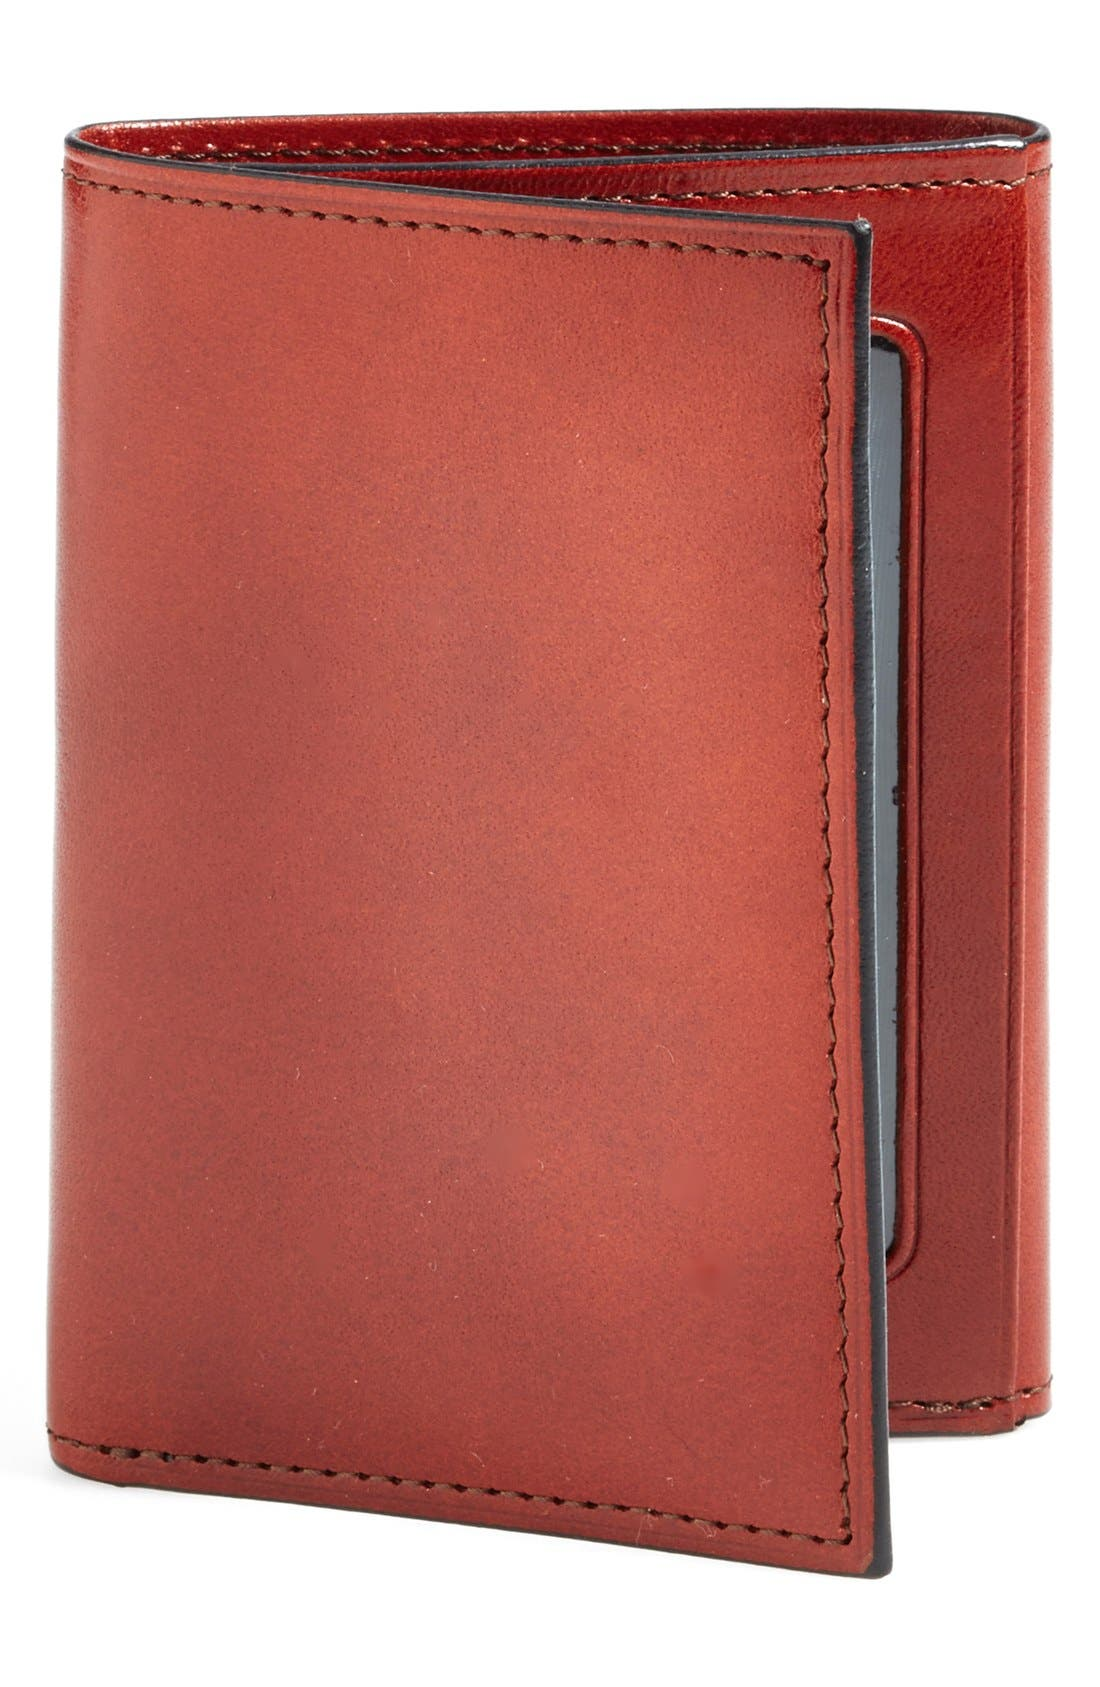 Alternate Image 1 Selected - Bosca 'Old Leather' Trifold Wallet